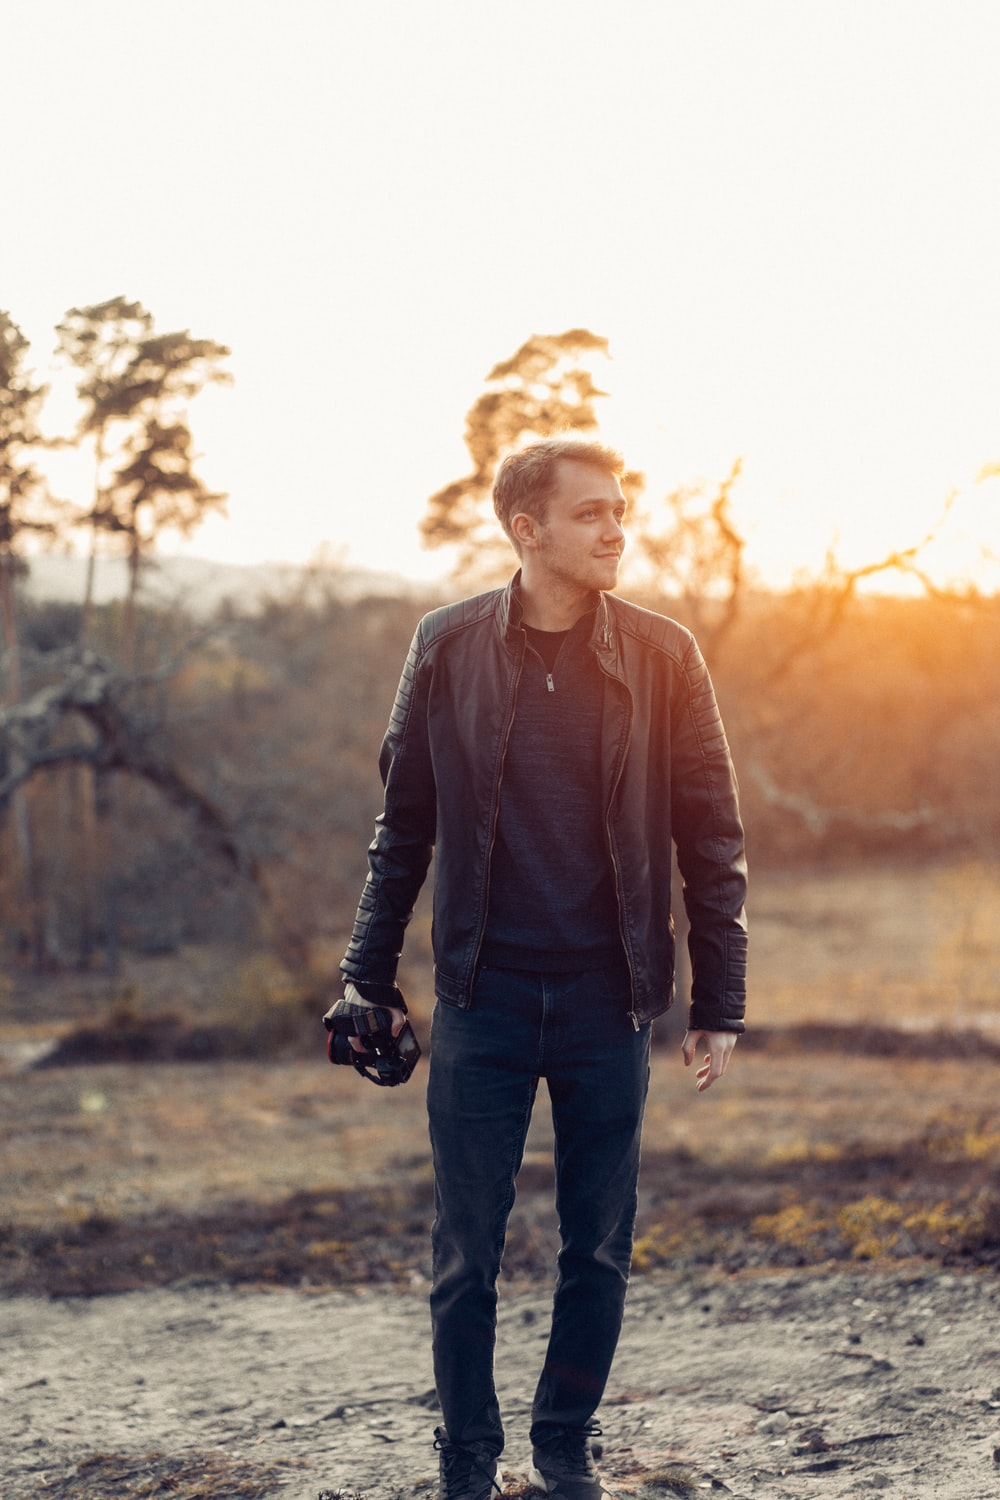 man in black leather jacket standing on grass field during daytime